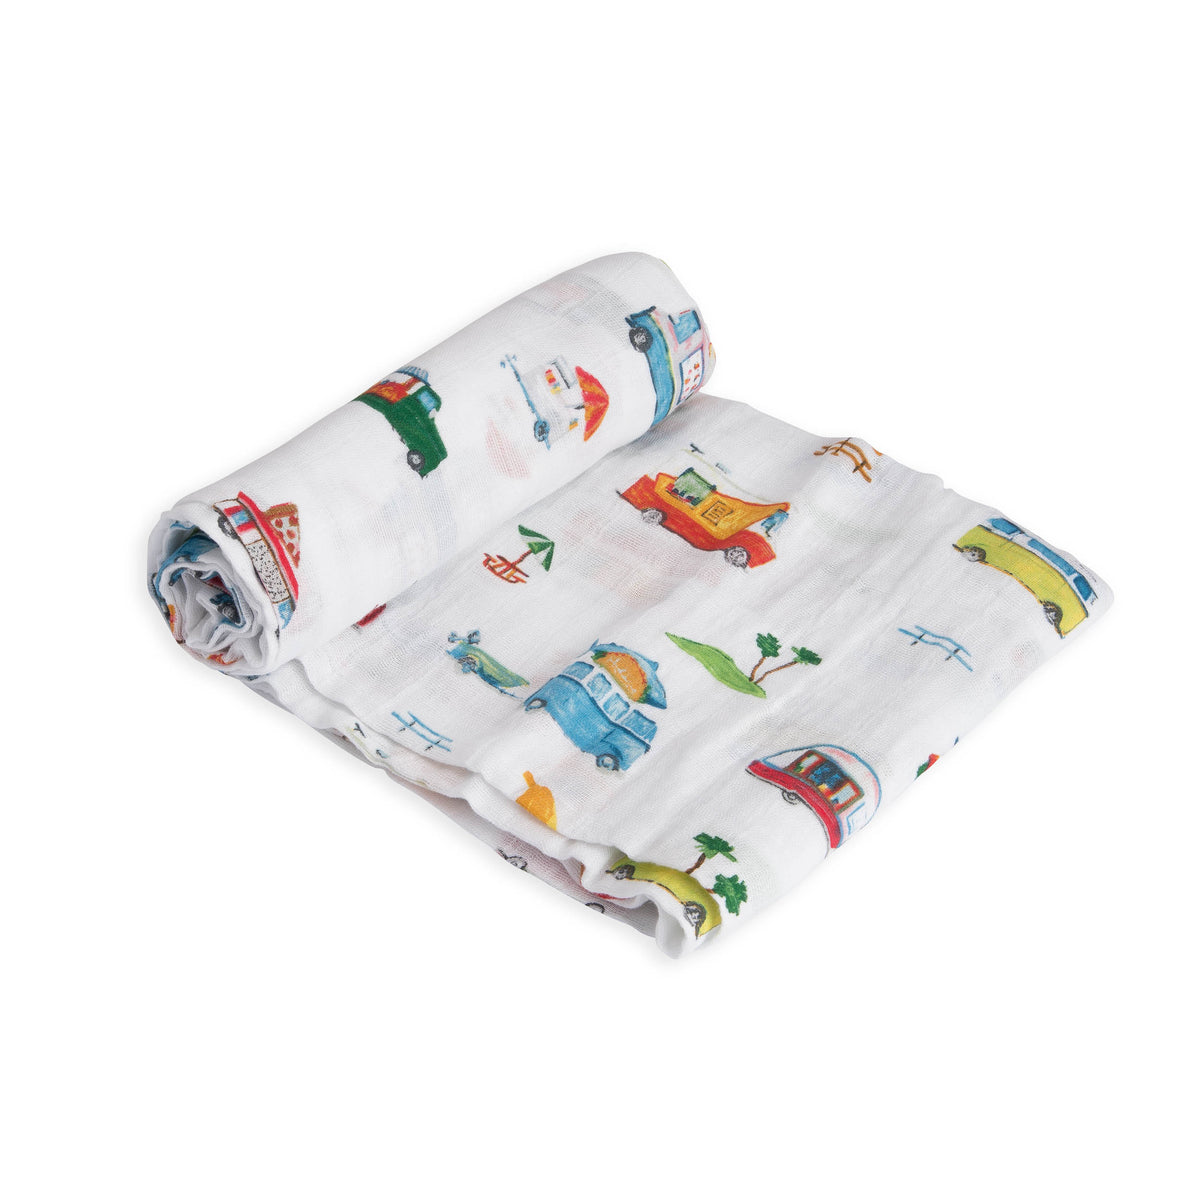 Cotton Muslin Swaddle - Food Truck